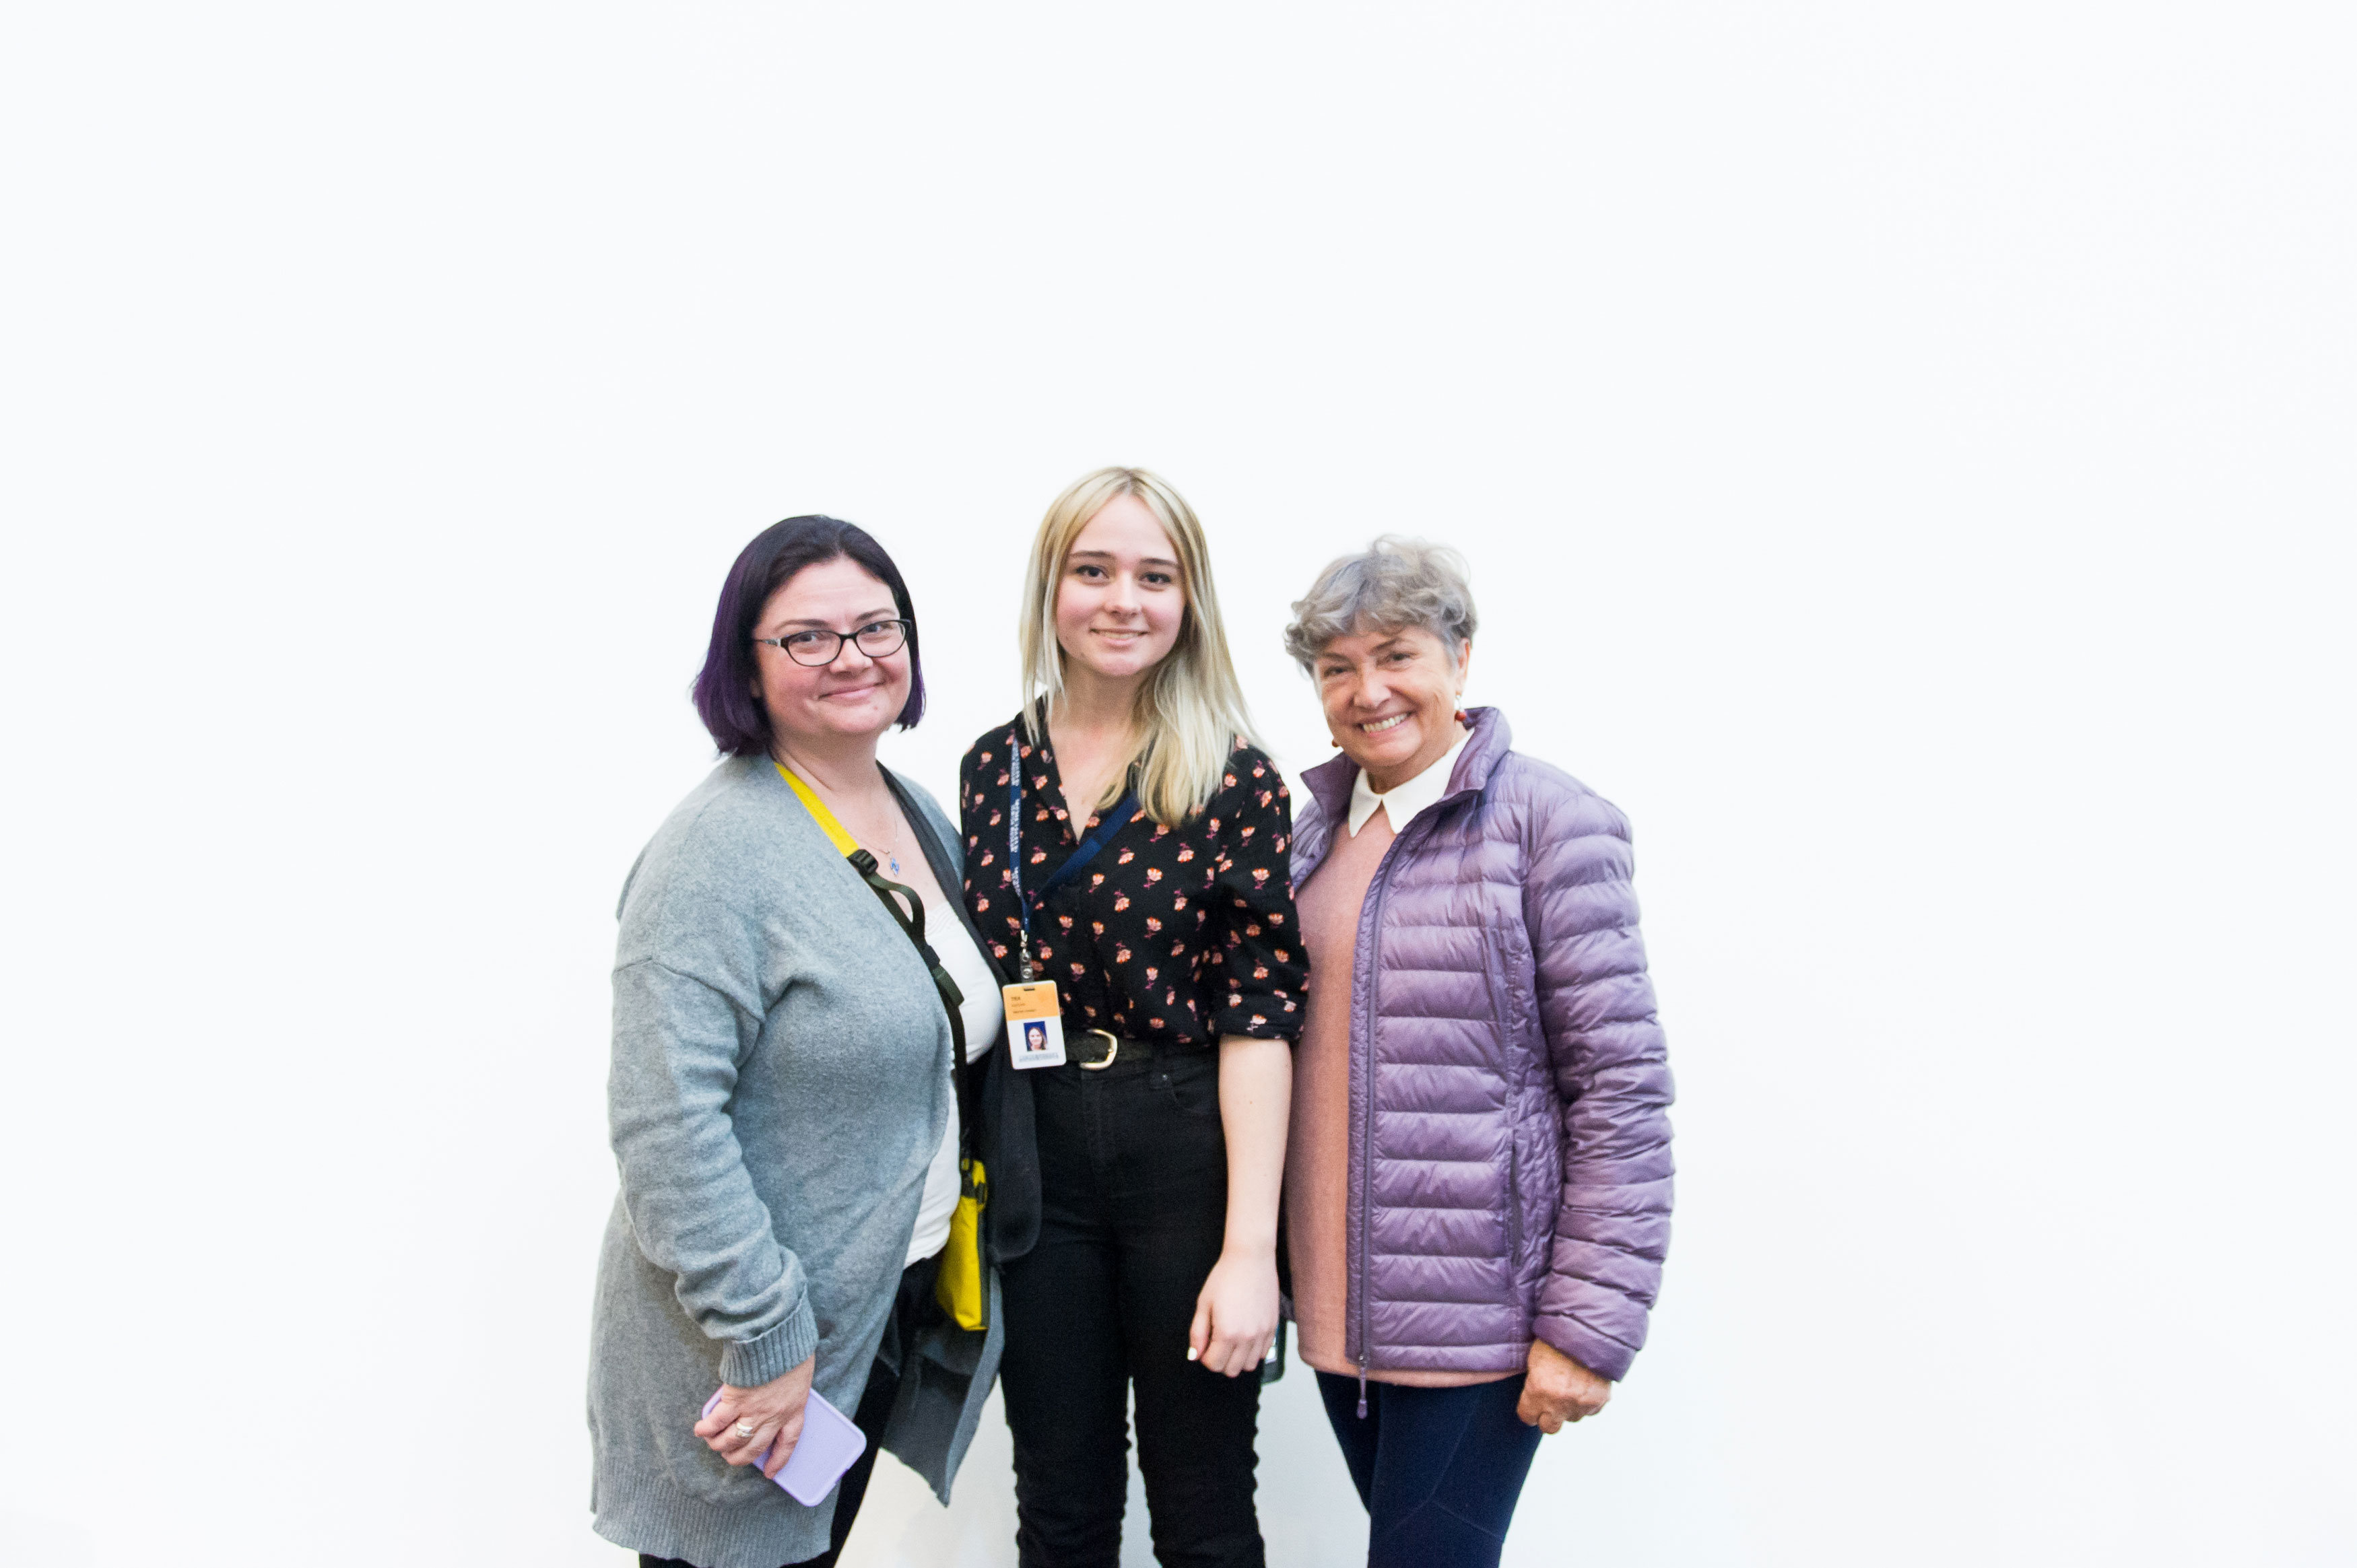 Teen Art Connect intern and <em>What We Hold</em> participant Téa Kaplan with her mother and grandmother at the opening reception.